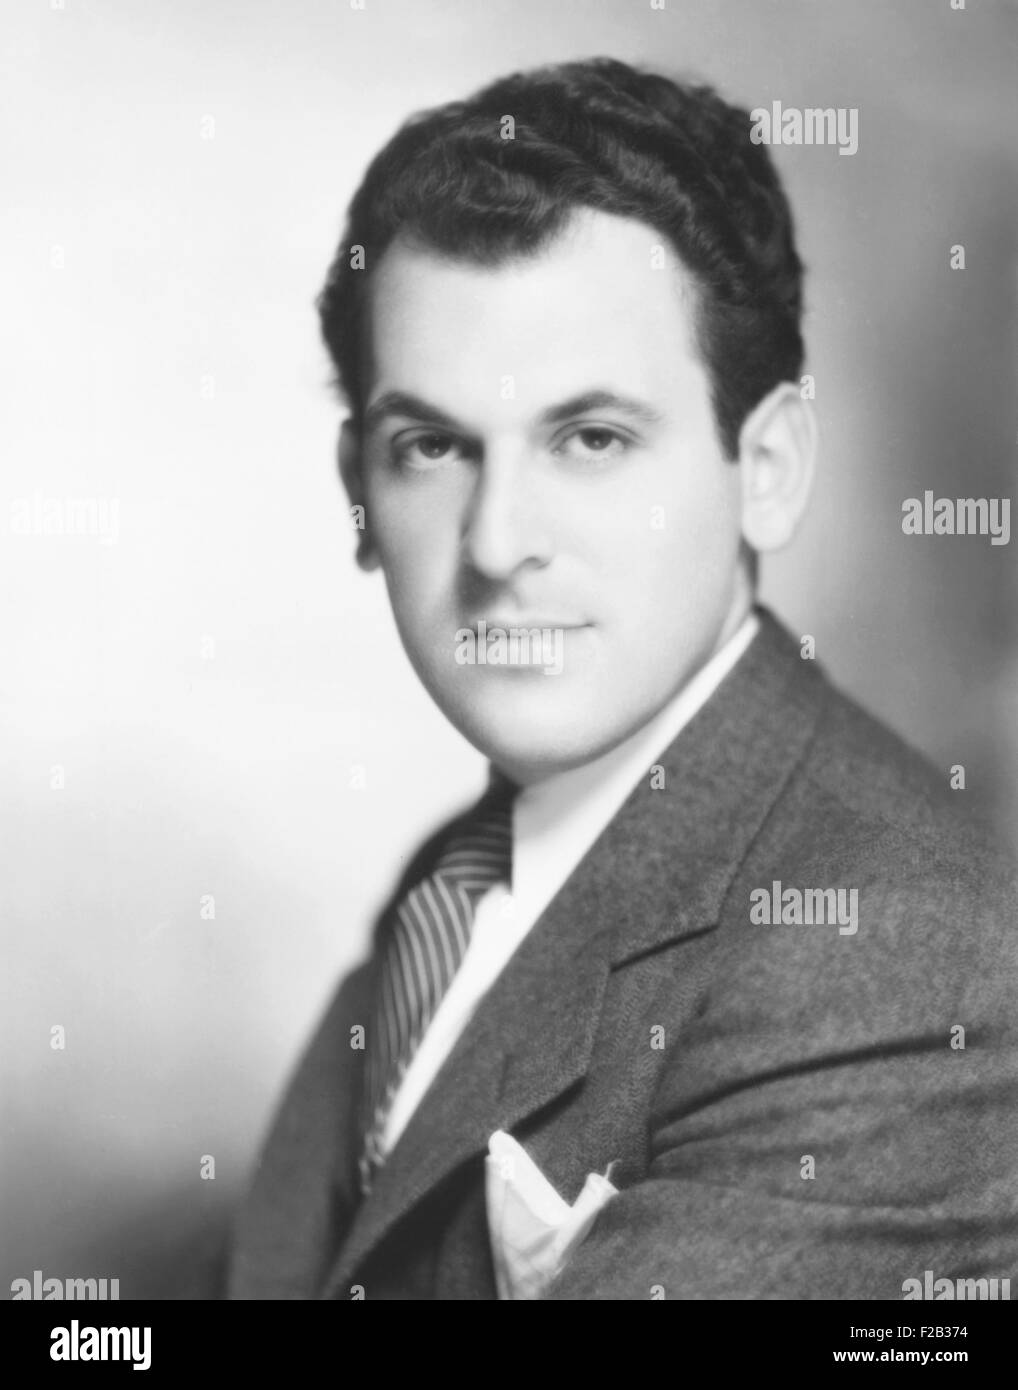 Moss Hart, American playwright and theatre director, ca. 1938. His first Broadway hit was 'Once in a Lifetime' - Stock Image